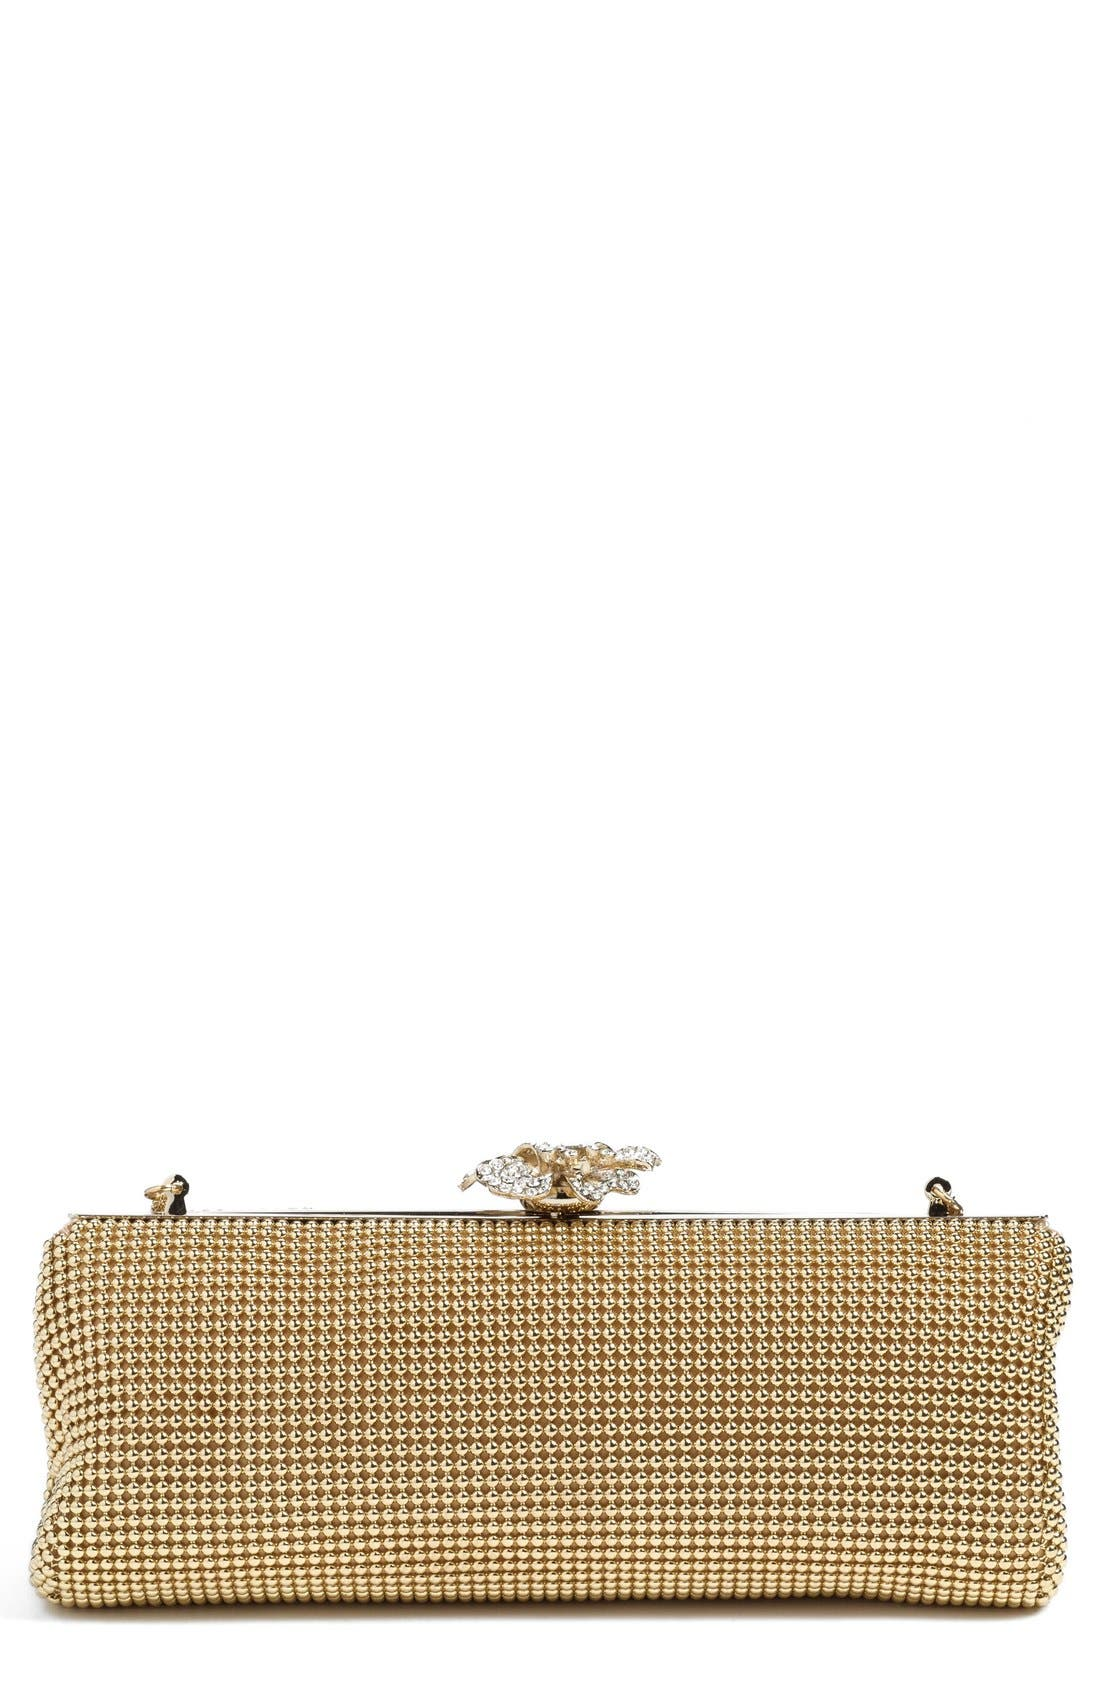 Alternate Image 1 Selected - Whiting & Davis 'Crystal Flower' Metal Mesh Clutch